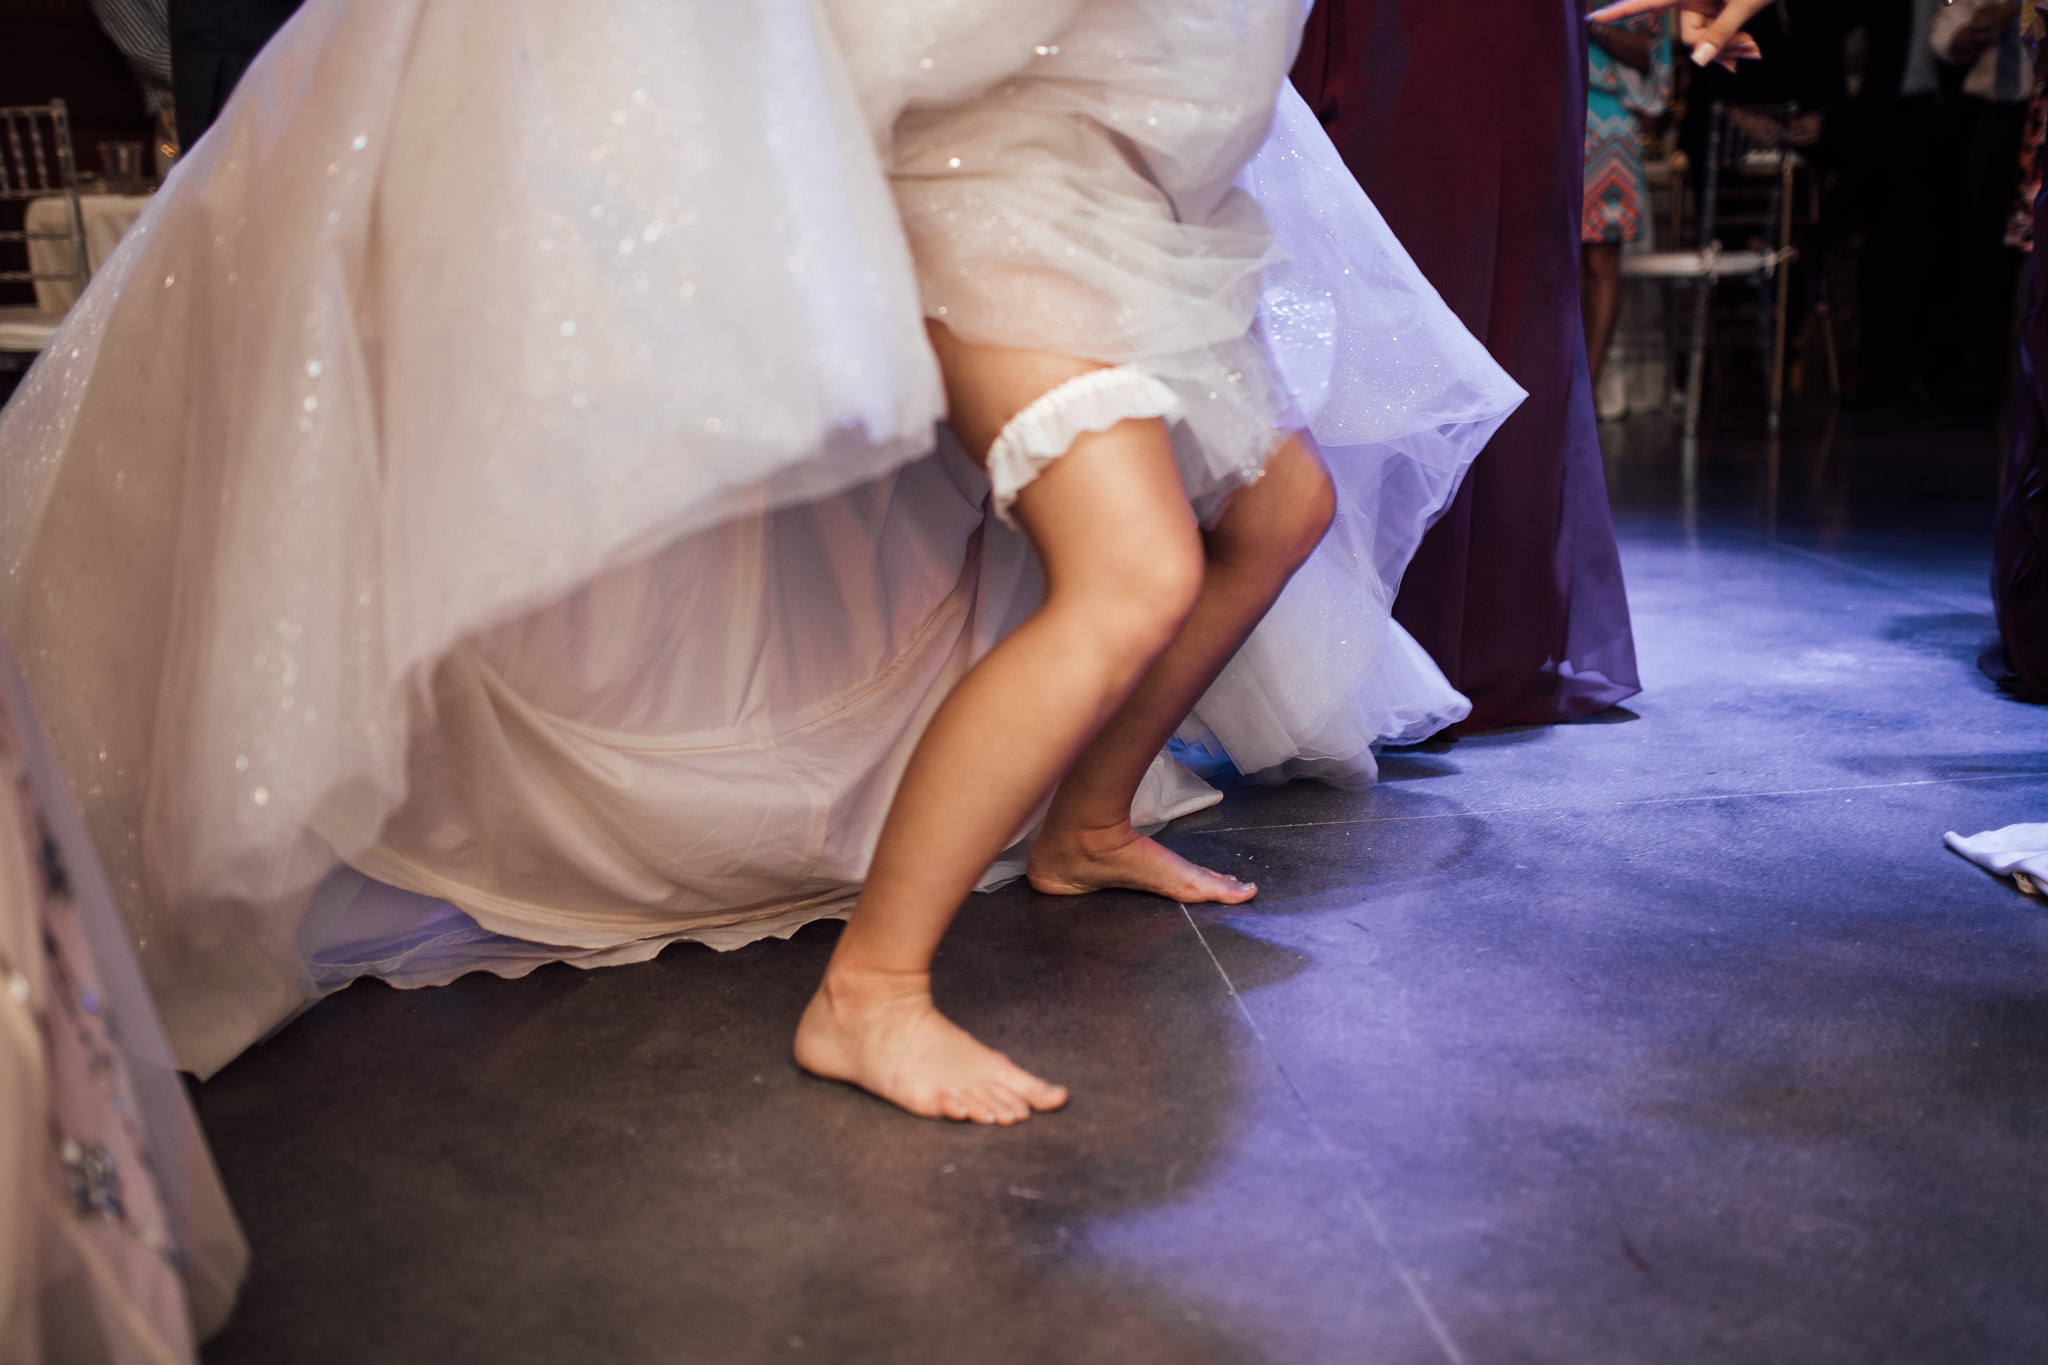 memphis-wedding-photographer-the-warmth-around-you-best-dance-moves-2.jpg